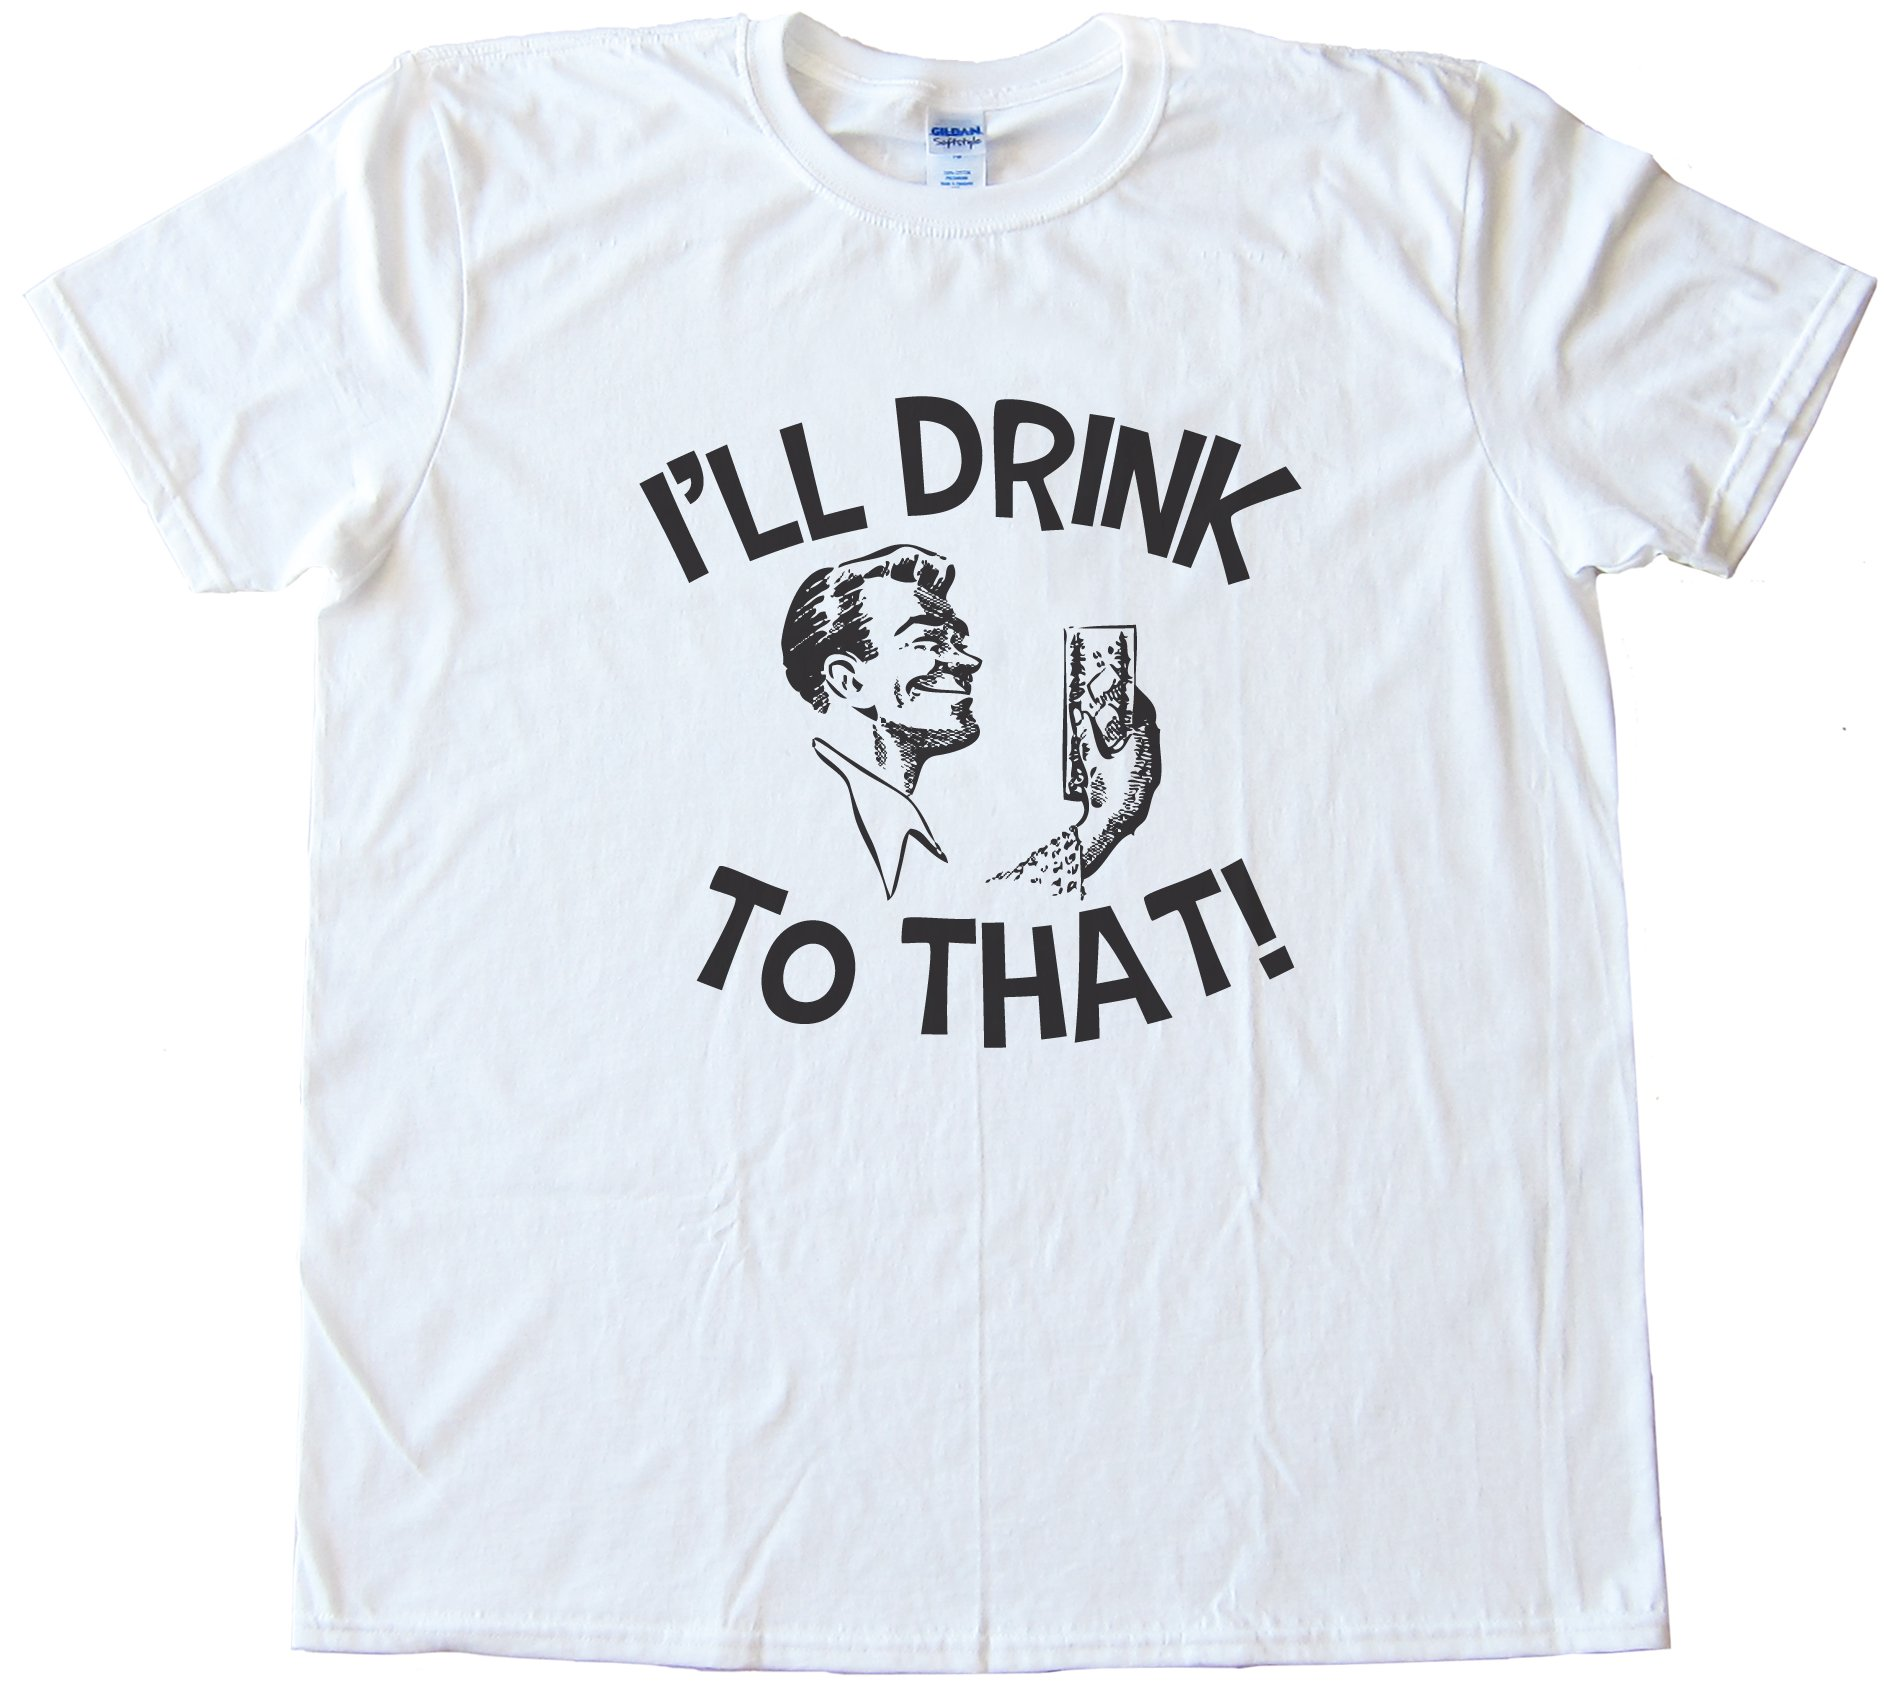 I'Ll Drink To That! Party Tee Shirt